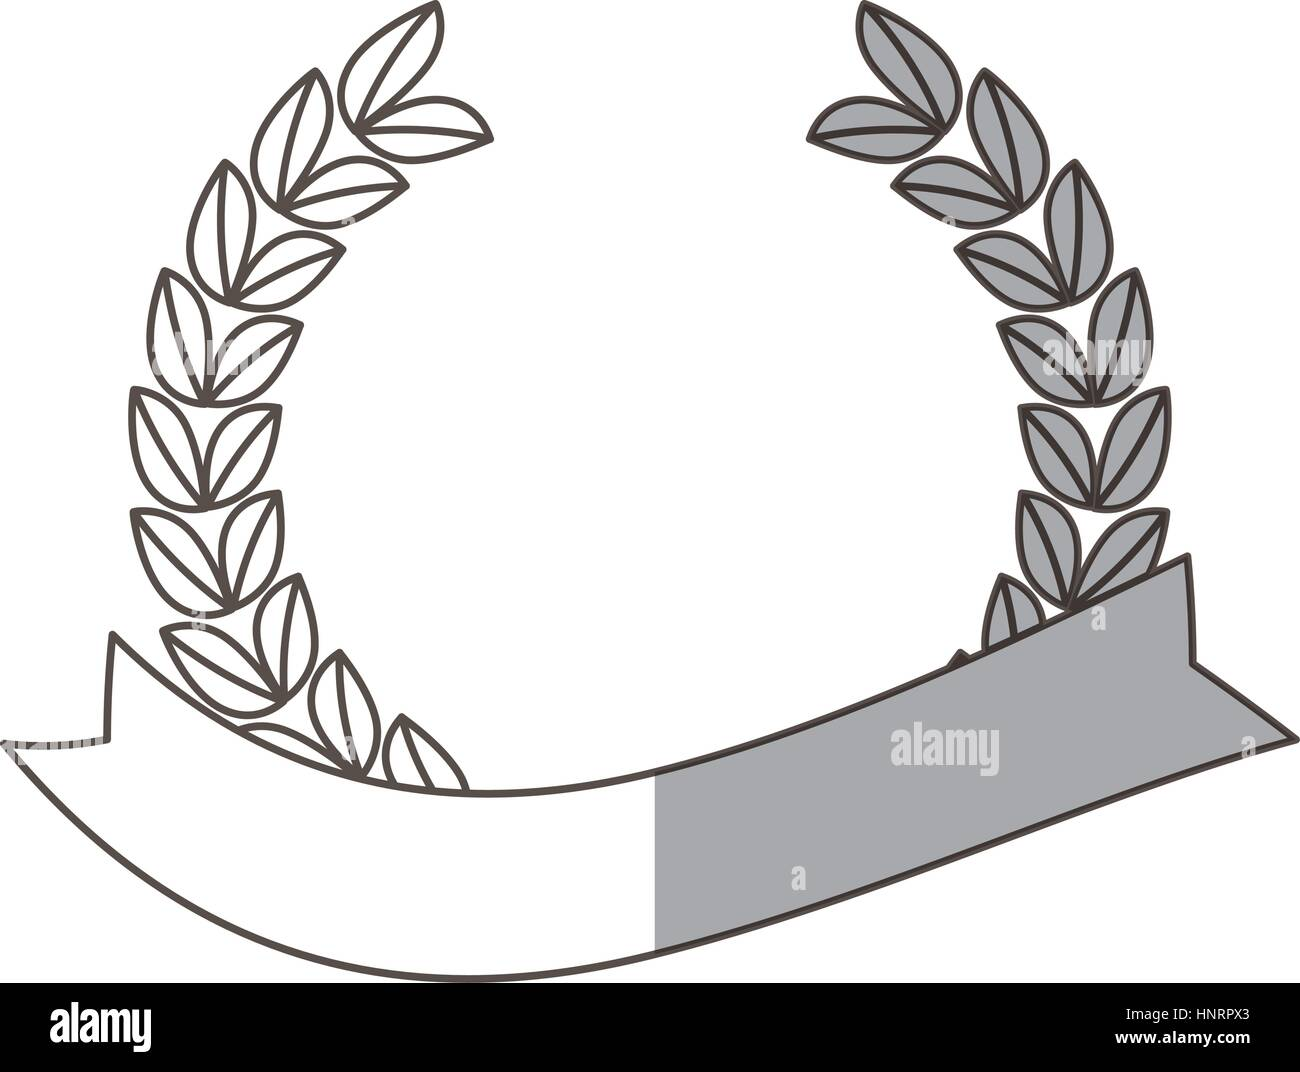 laurel wreath decorative banner with shadow vector illustration eps 10 - Stock Image